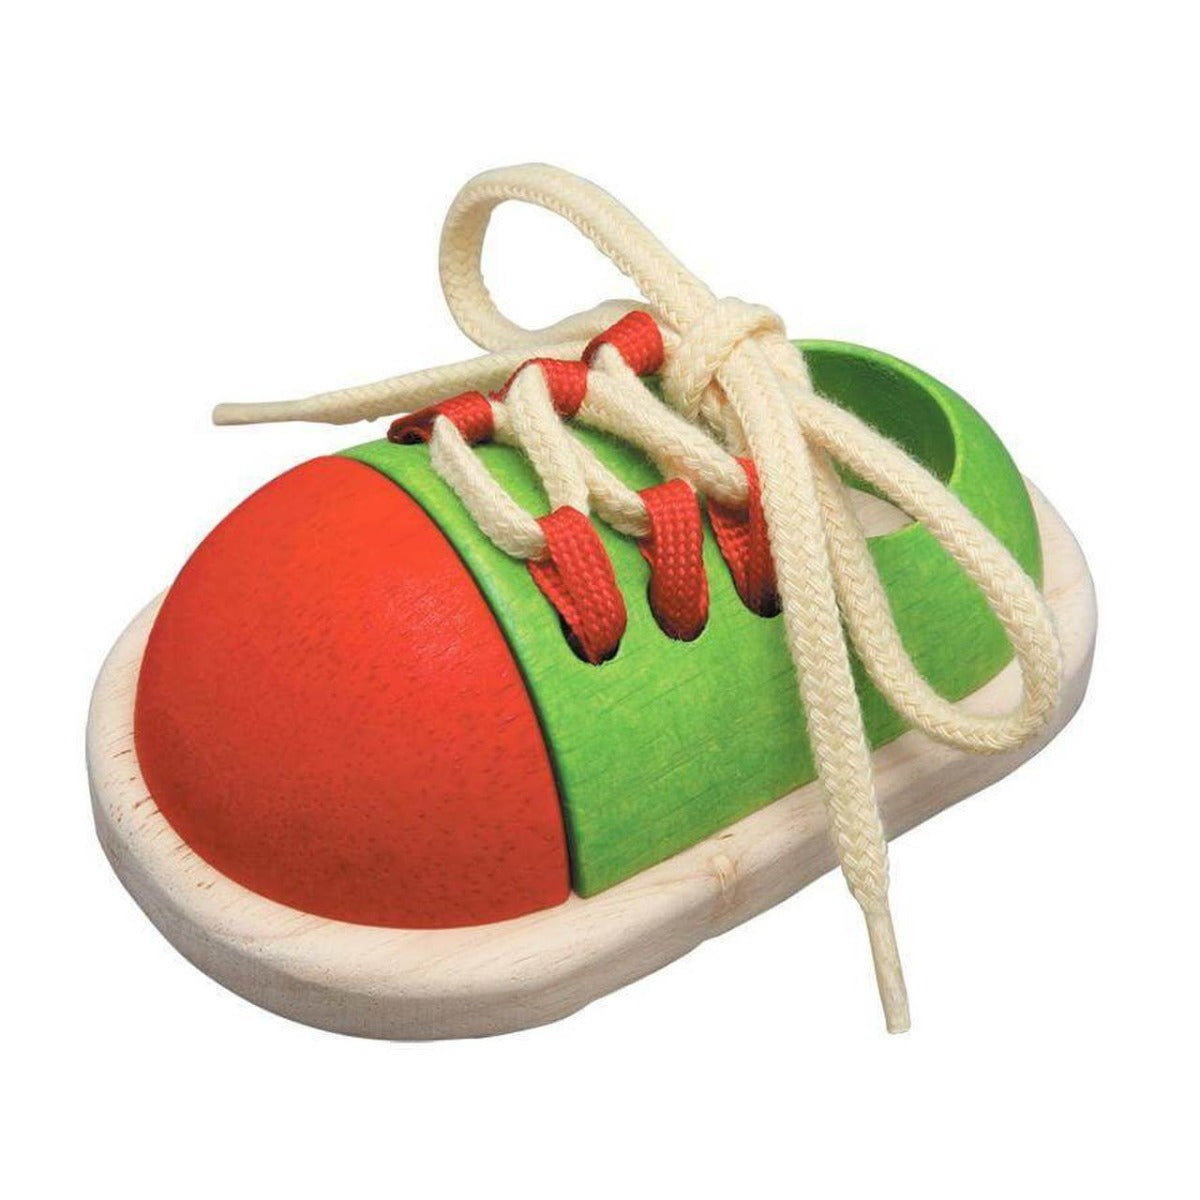 Plan Toys Wooden Tie Up Shoe with laces